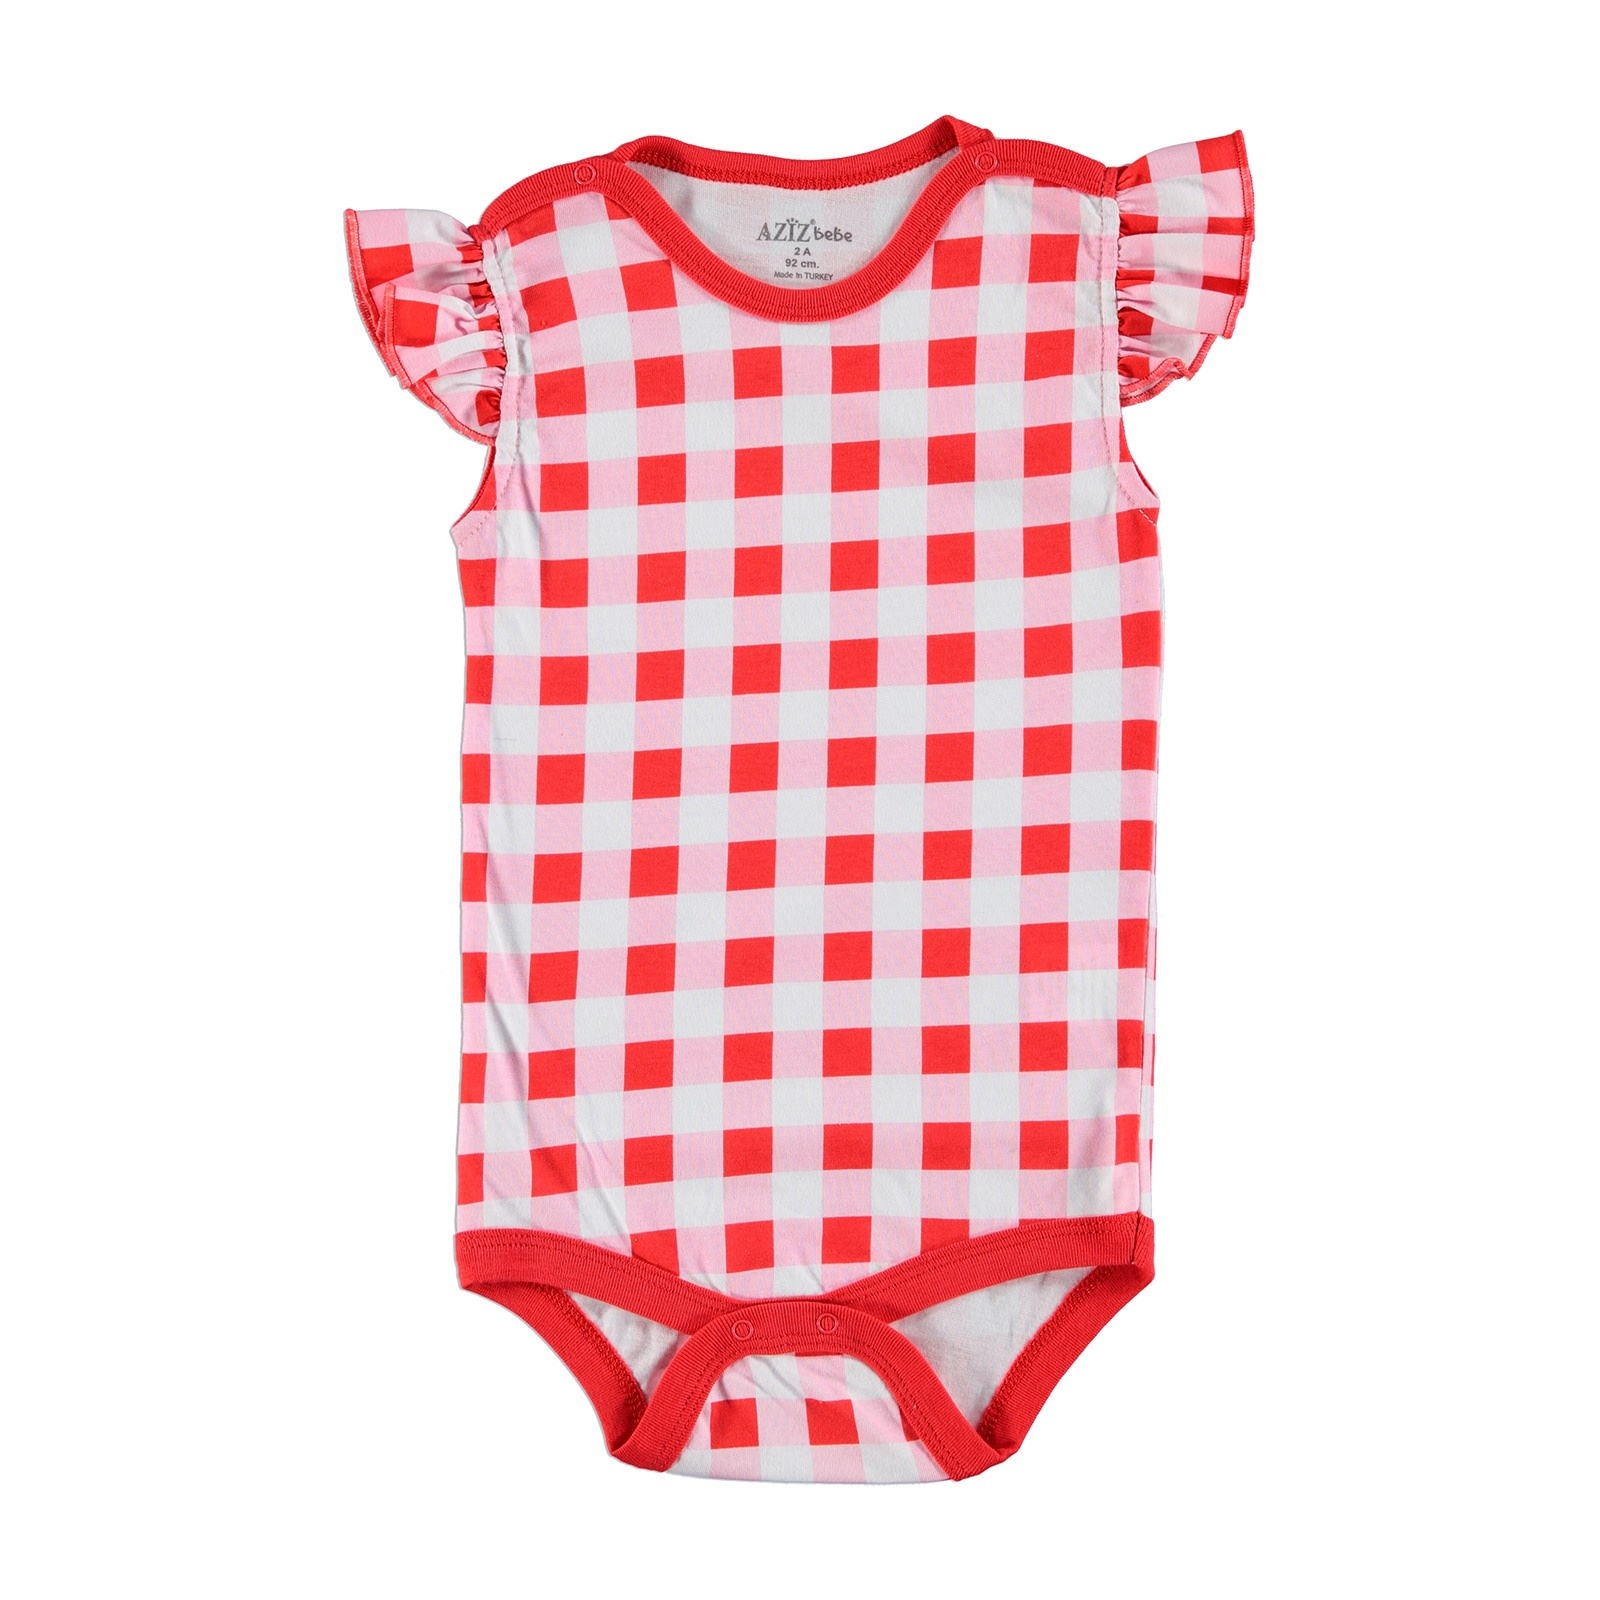 Ebebek Aziz Bebe Baby Girl Summer Short Sleeve Bodysuit